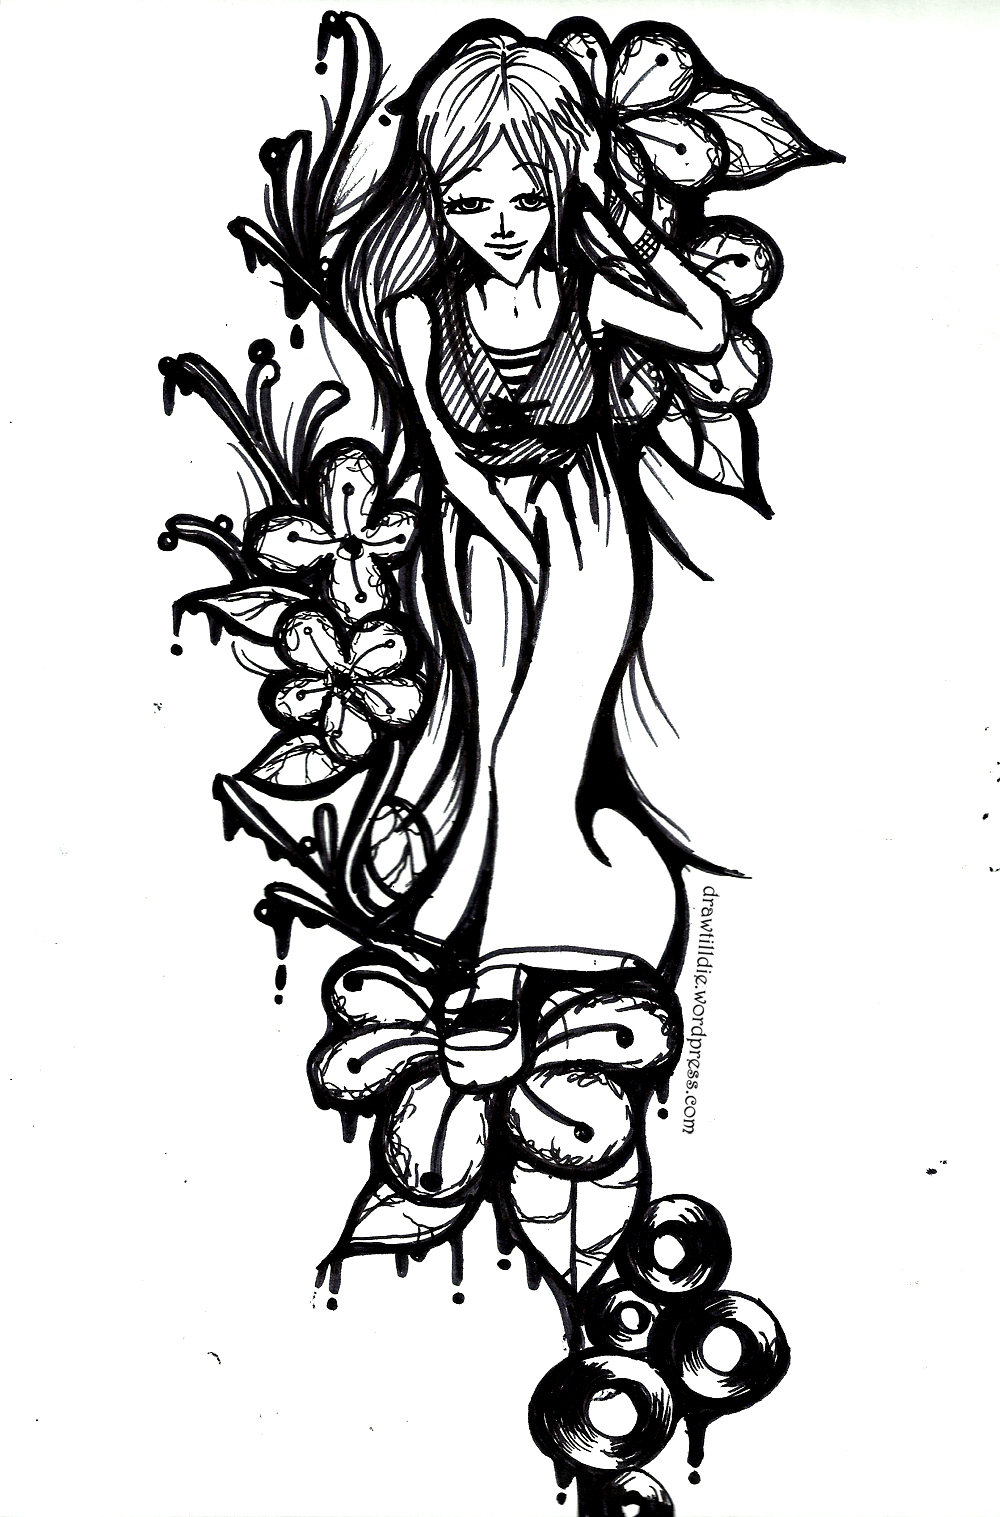 1000x1517 Black And White Drawn Girl Design Drawing Anienday Land